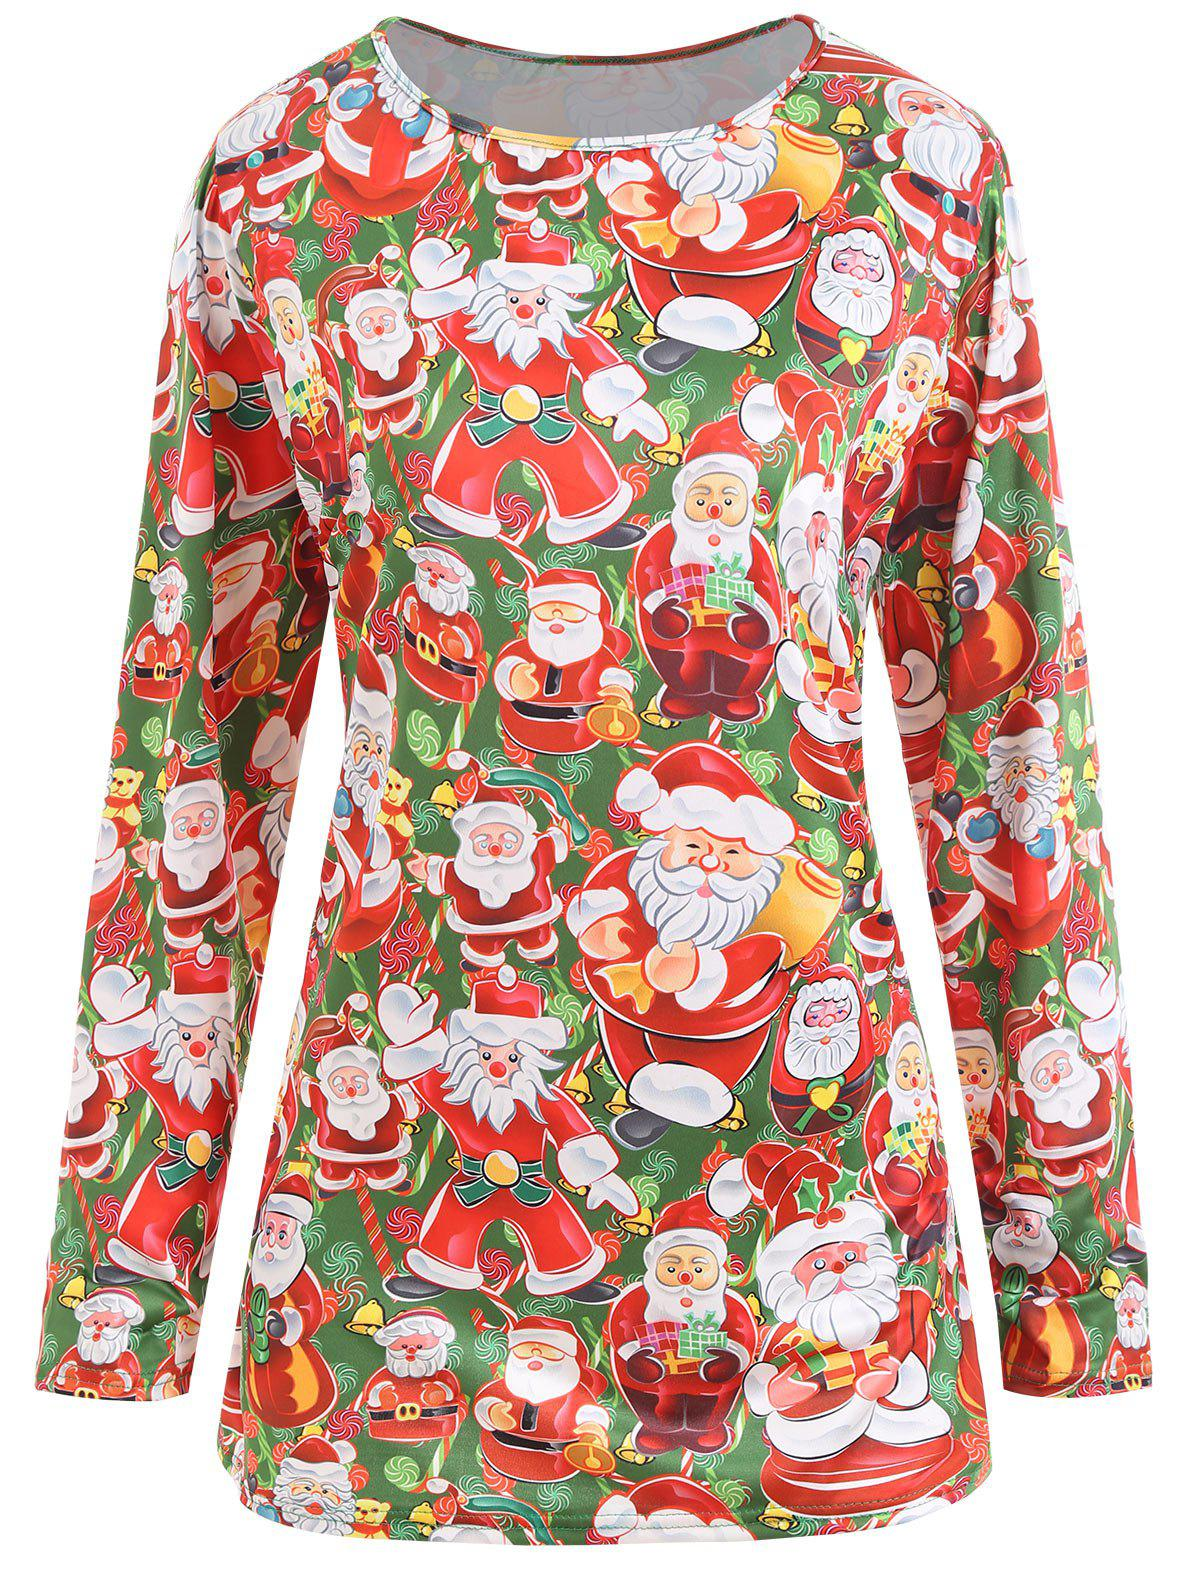 Plus Size Christmas Santa Claus T-shirtWOMEN<br><br>Size: 2XL; Color: RED AND GREEN; Material: Polyester; Shirt Length: Long; Sleeve Length: Full; Collar: Round Neck; Style: Fashion; Season: Winter; Pattern Type: Print; Weight: 0.2150kg; Package Contents: 1 x T-shirt;